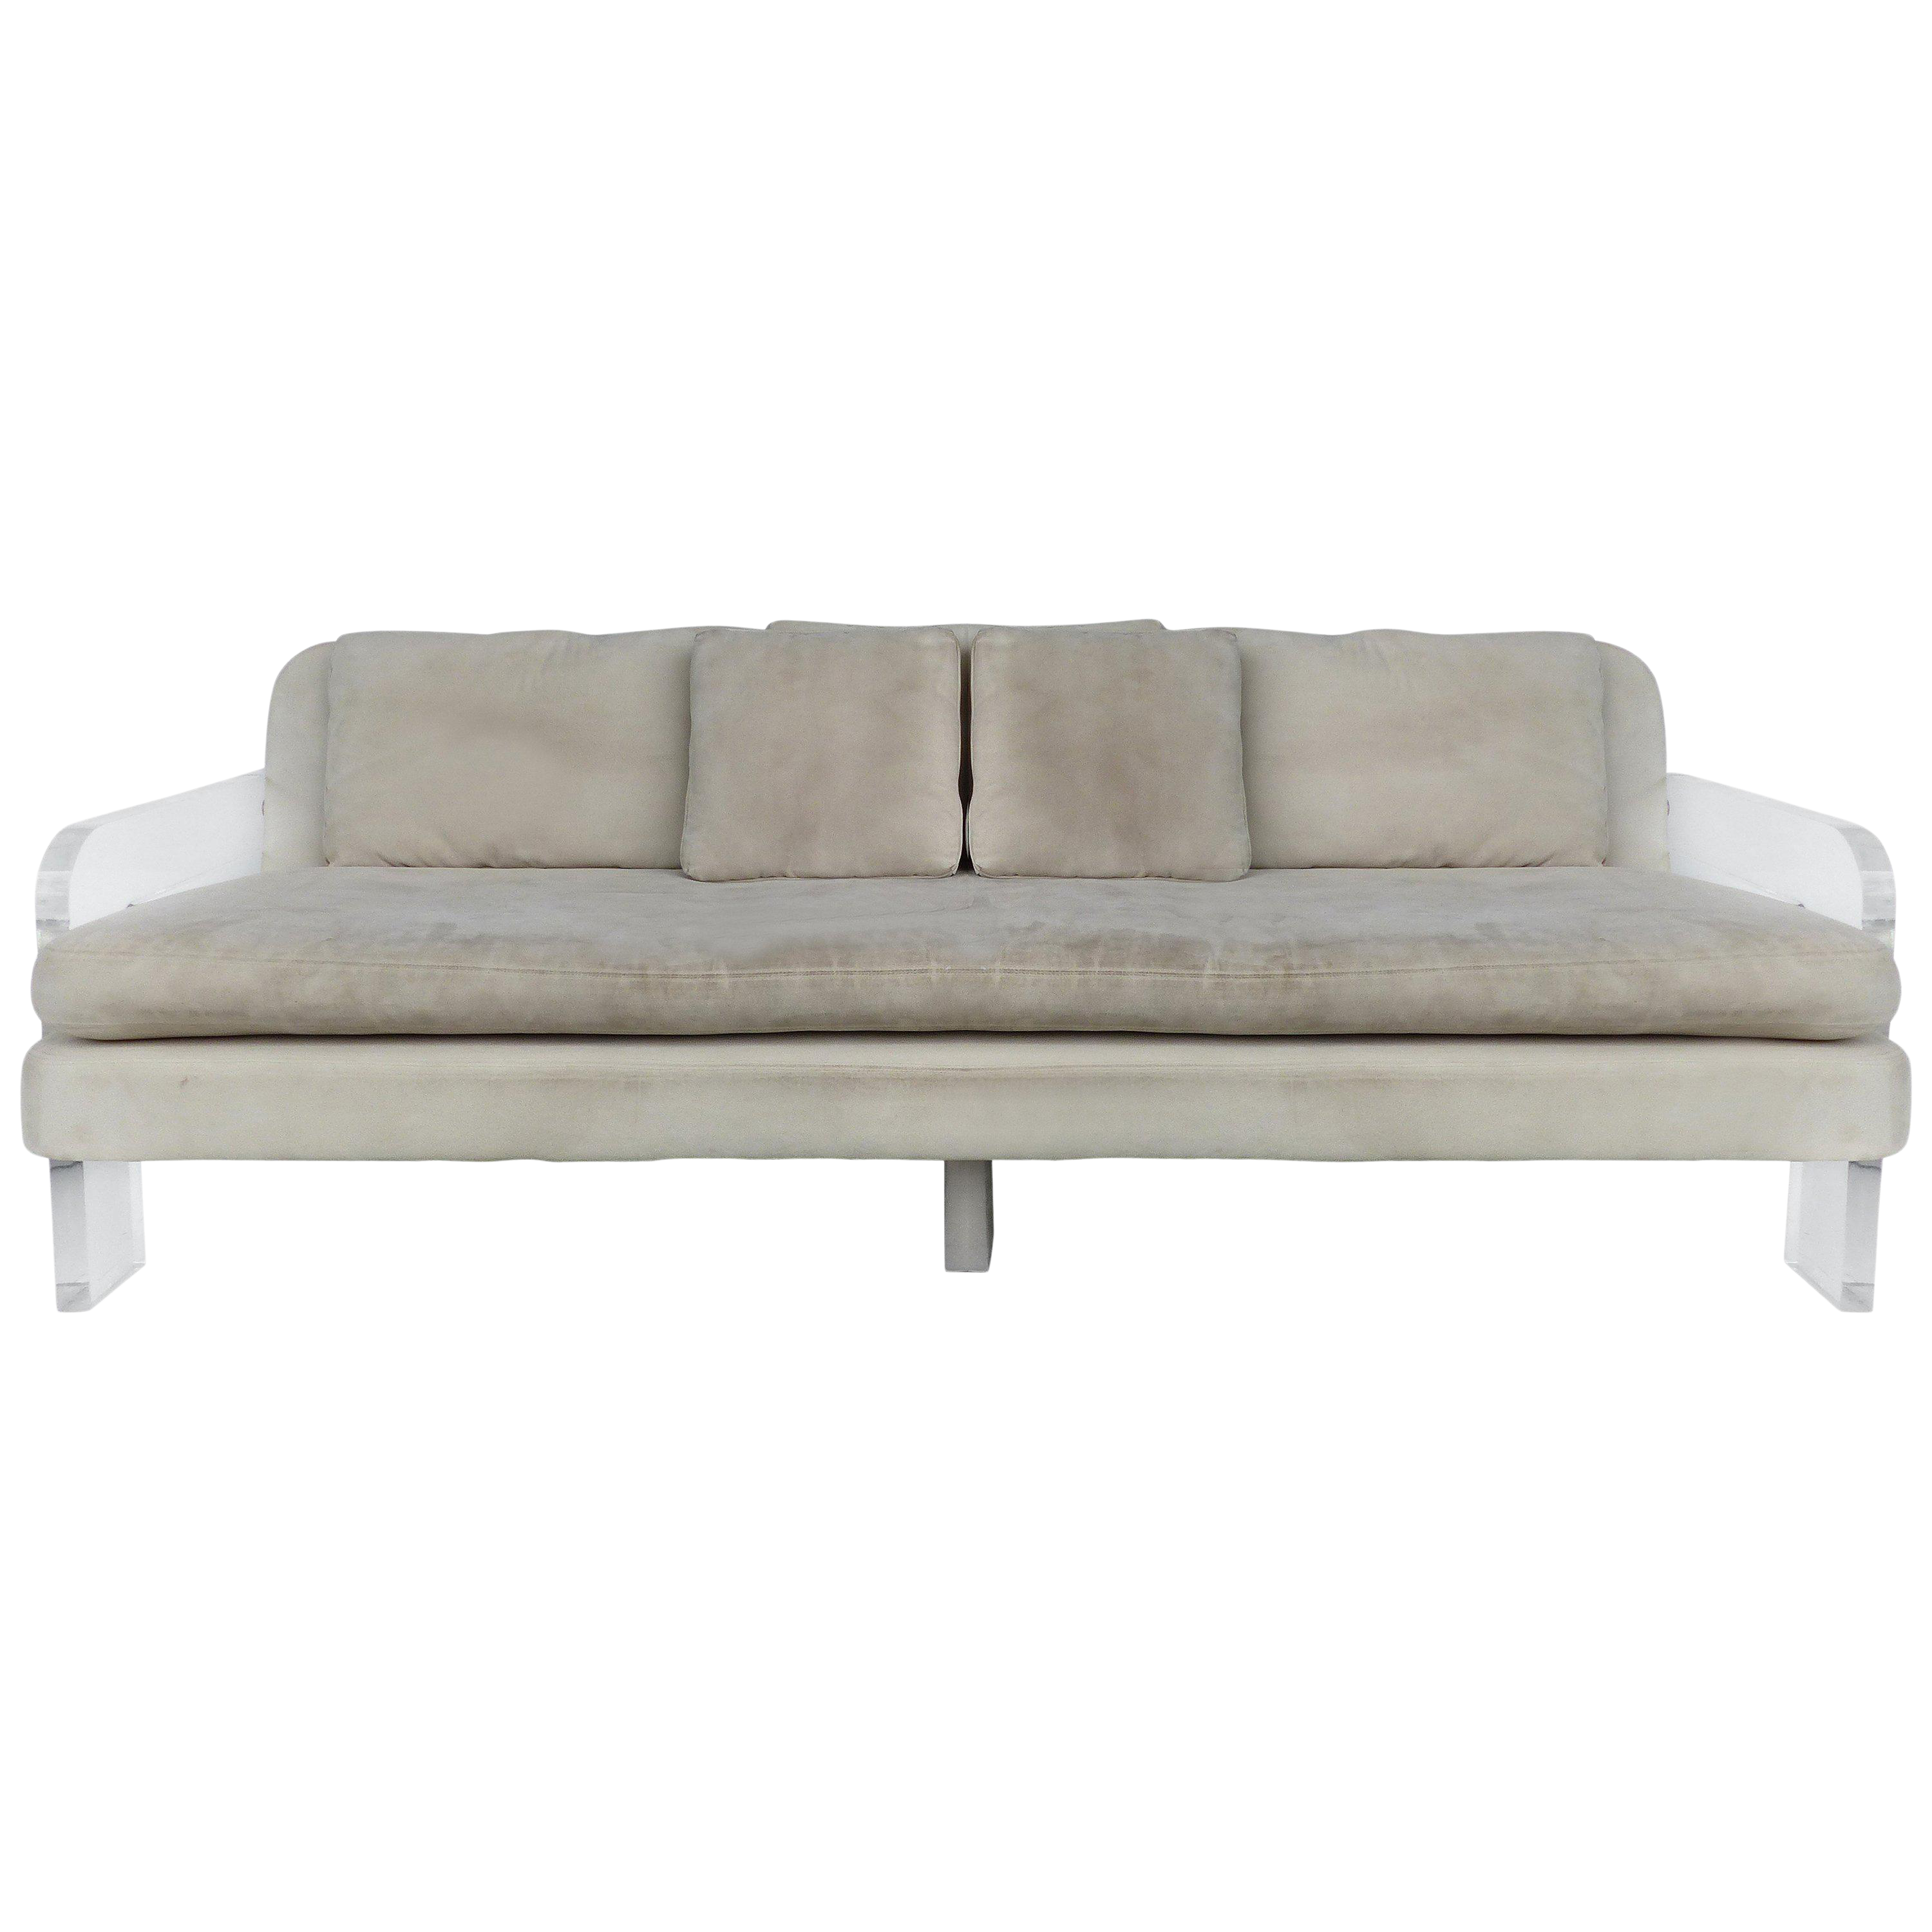 Superieur Large Ultrasuede Sofa With Lucite Arms And Support